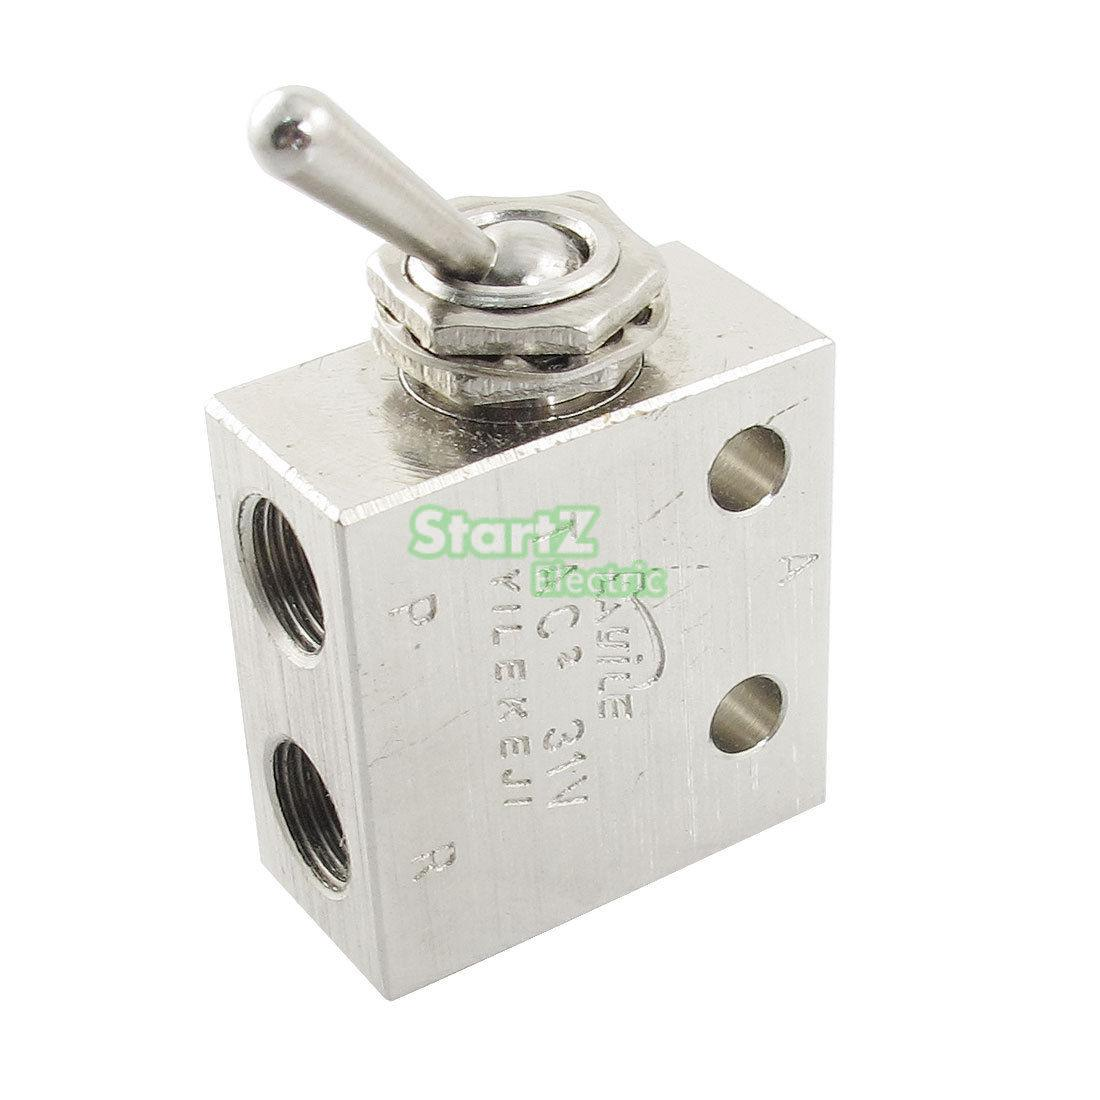 1/8PT Thread 2 Position 3 Way Rectangle Mechanical Air Pneumatic Valve TAC2-31V шар амазонит 6 см